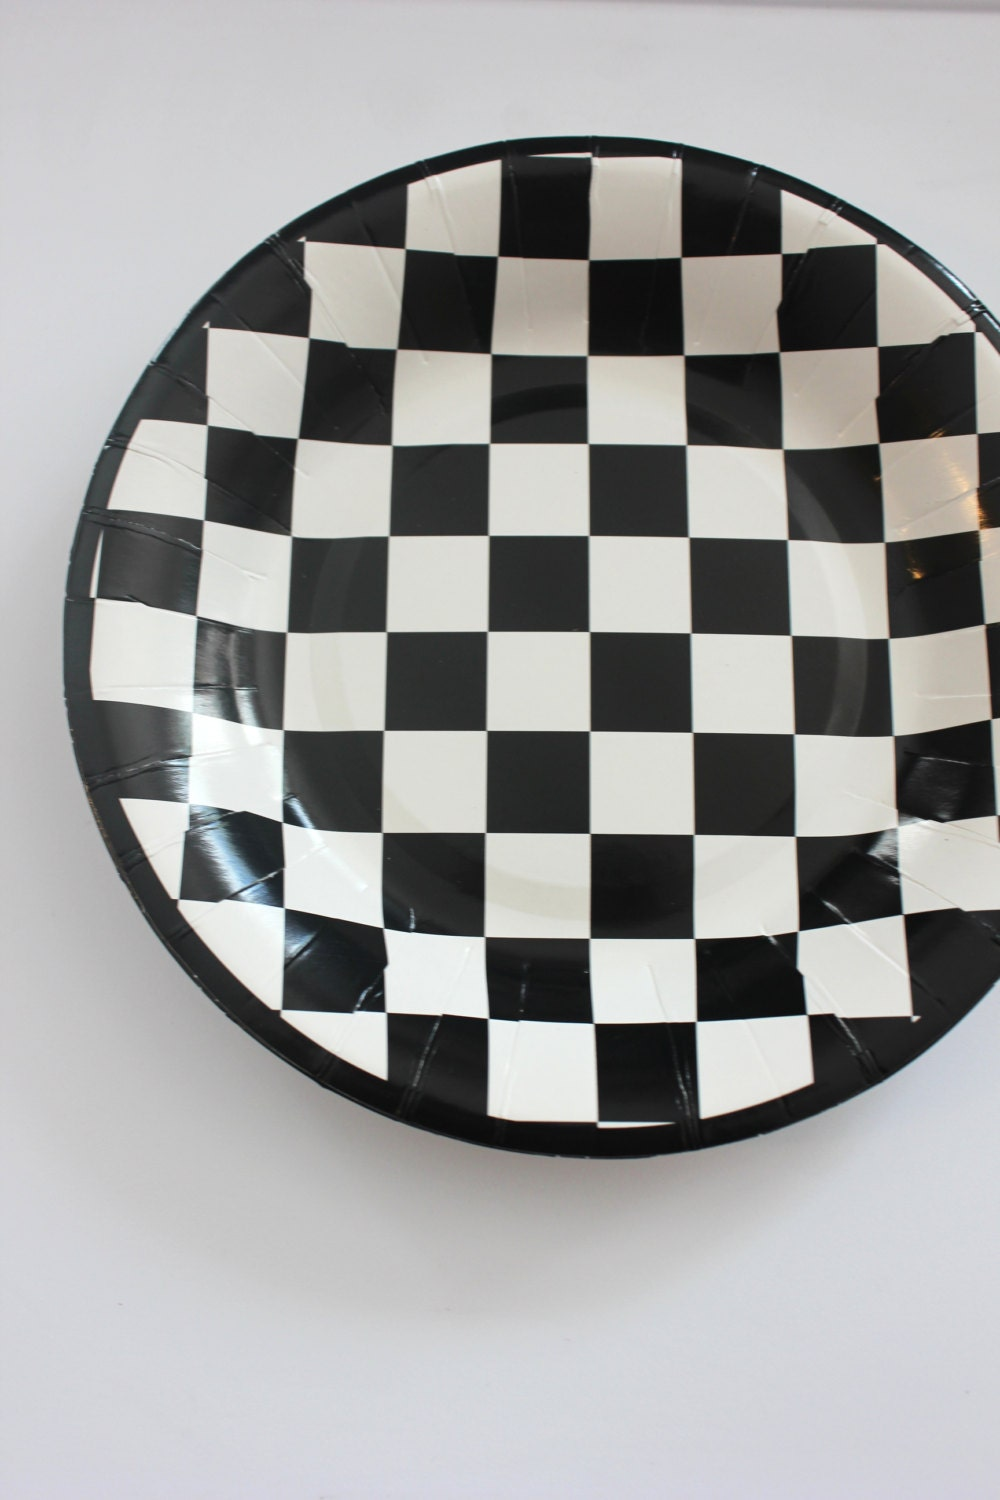 $12.00 & 16 BLACK And WHITE CHECKERED Paper Plates Cars Racecar Checkers ...